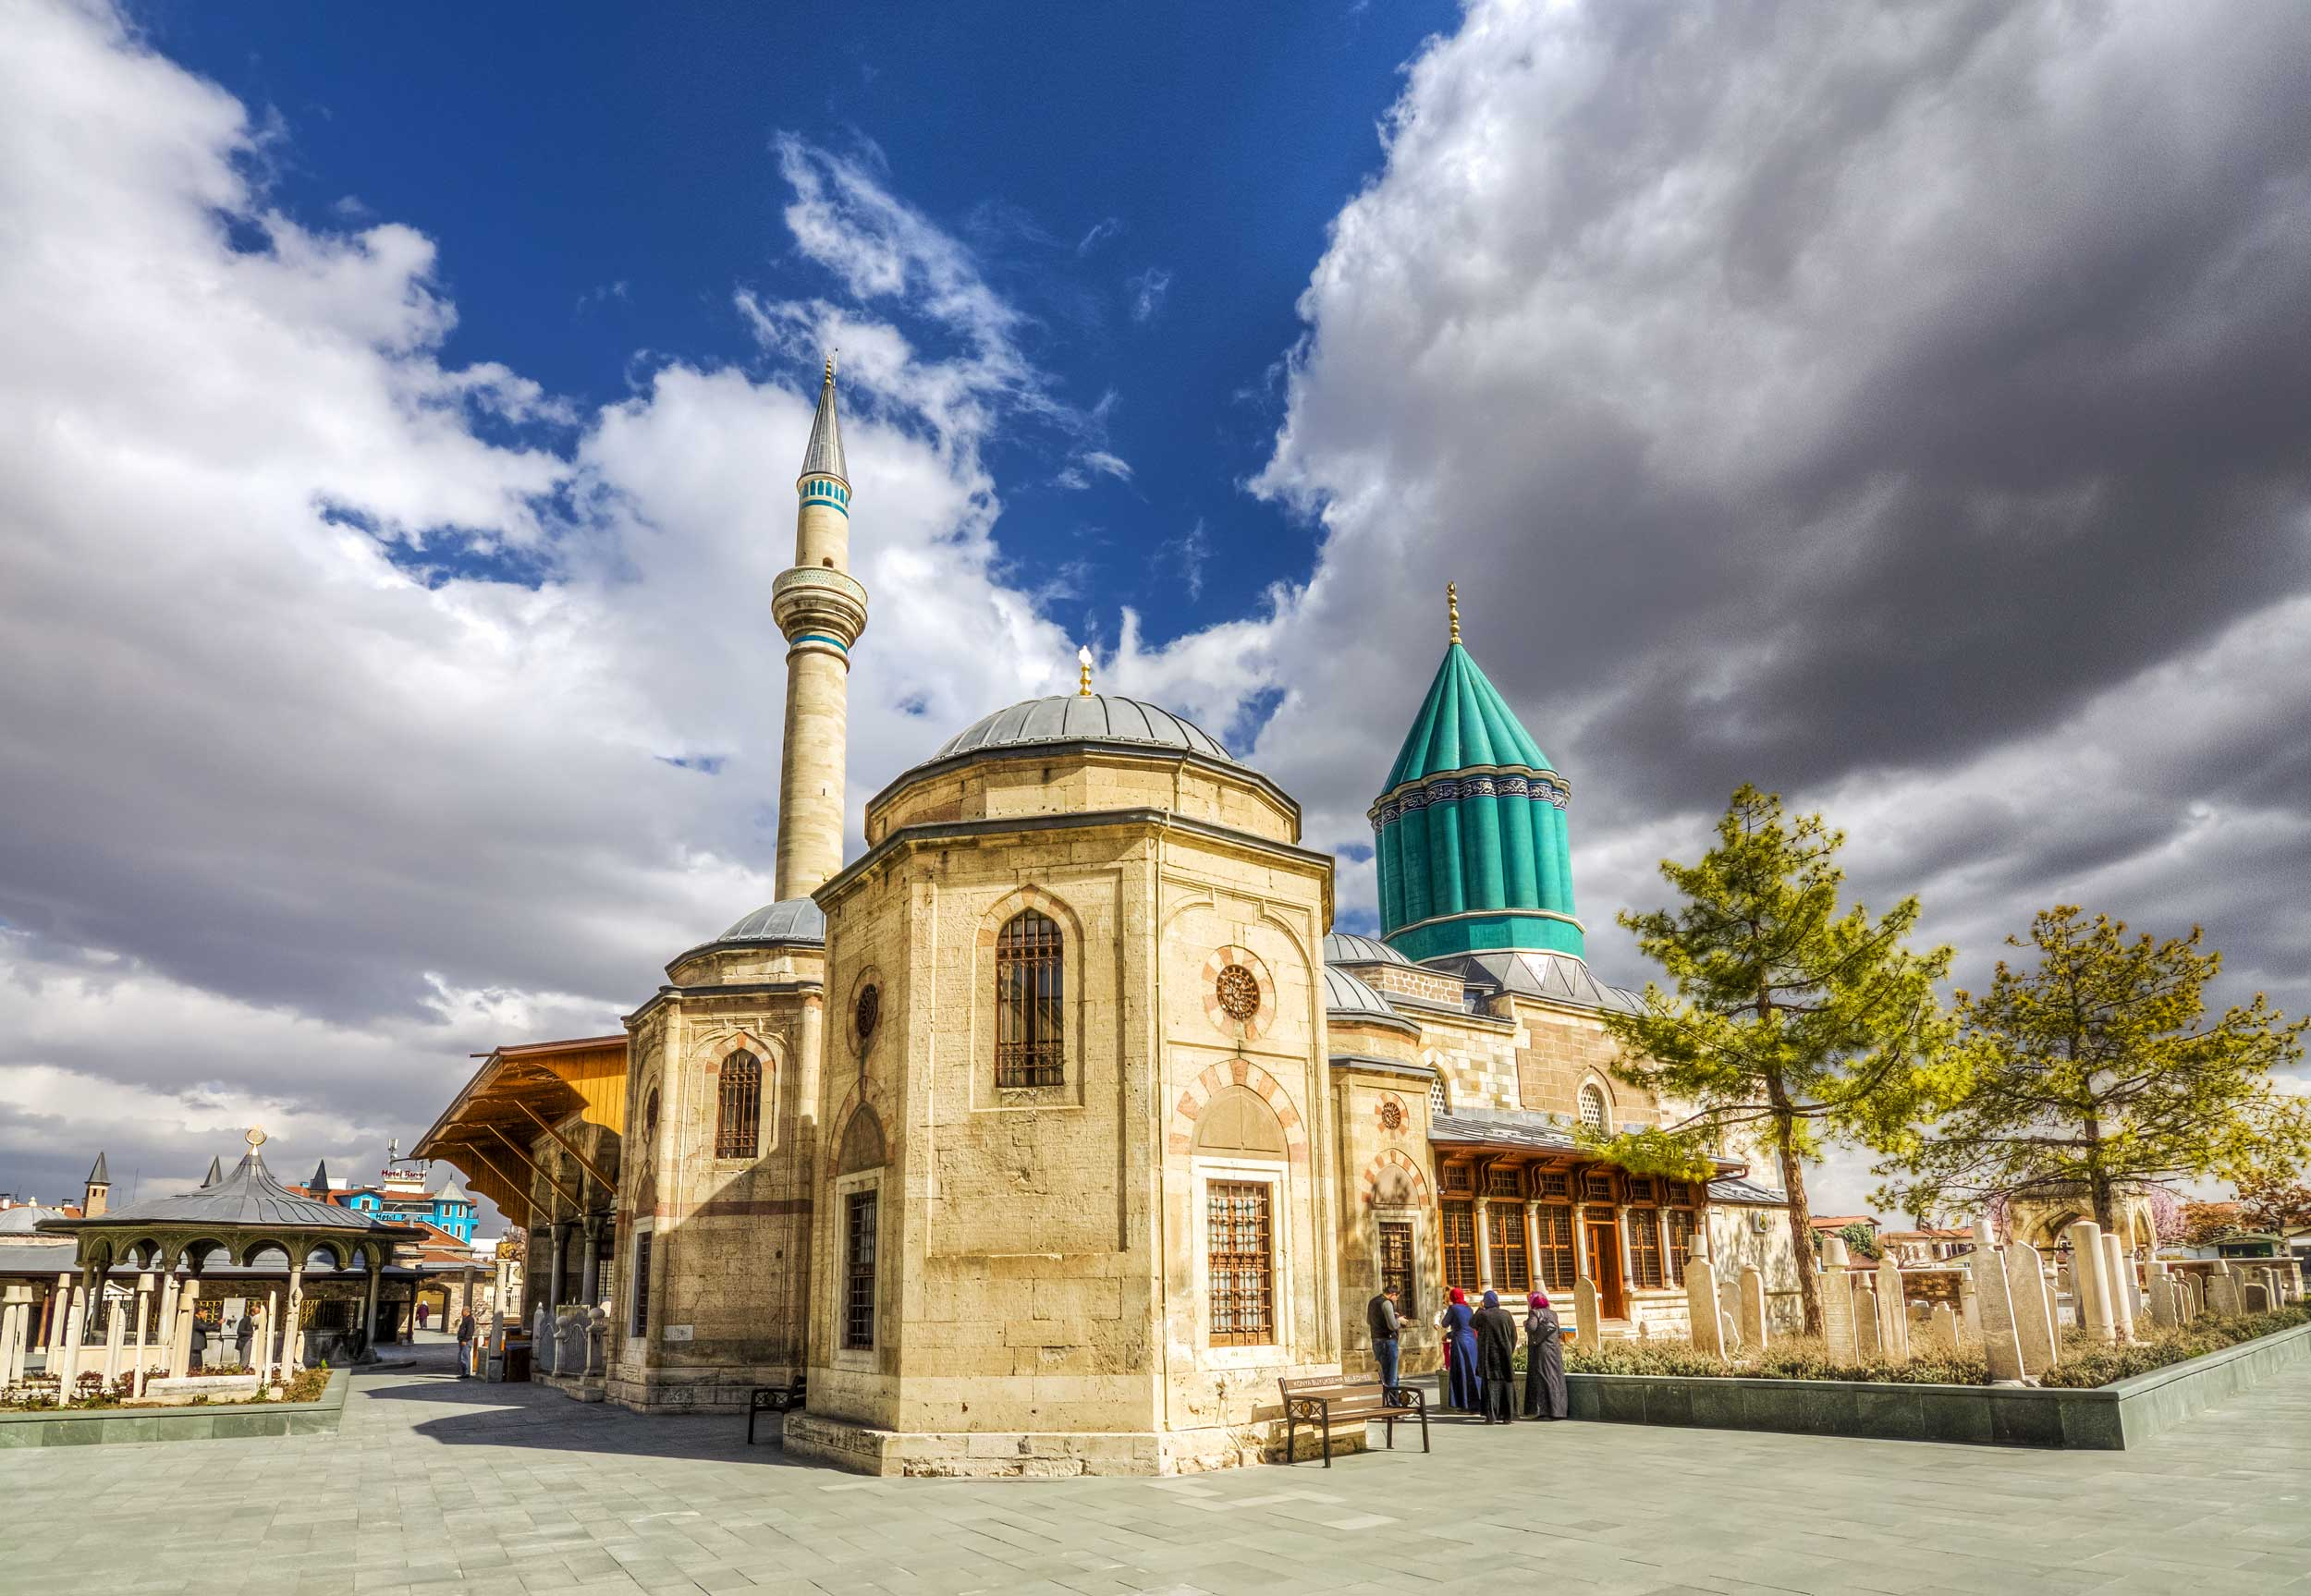 A large stone building with a green conical dome, Konya, Turkey